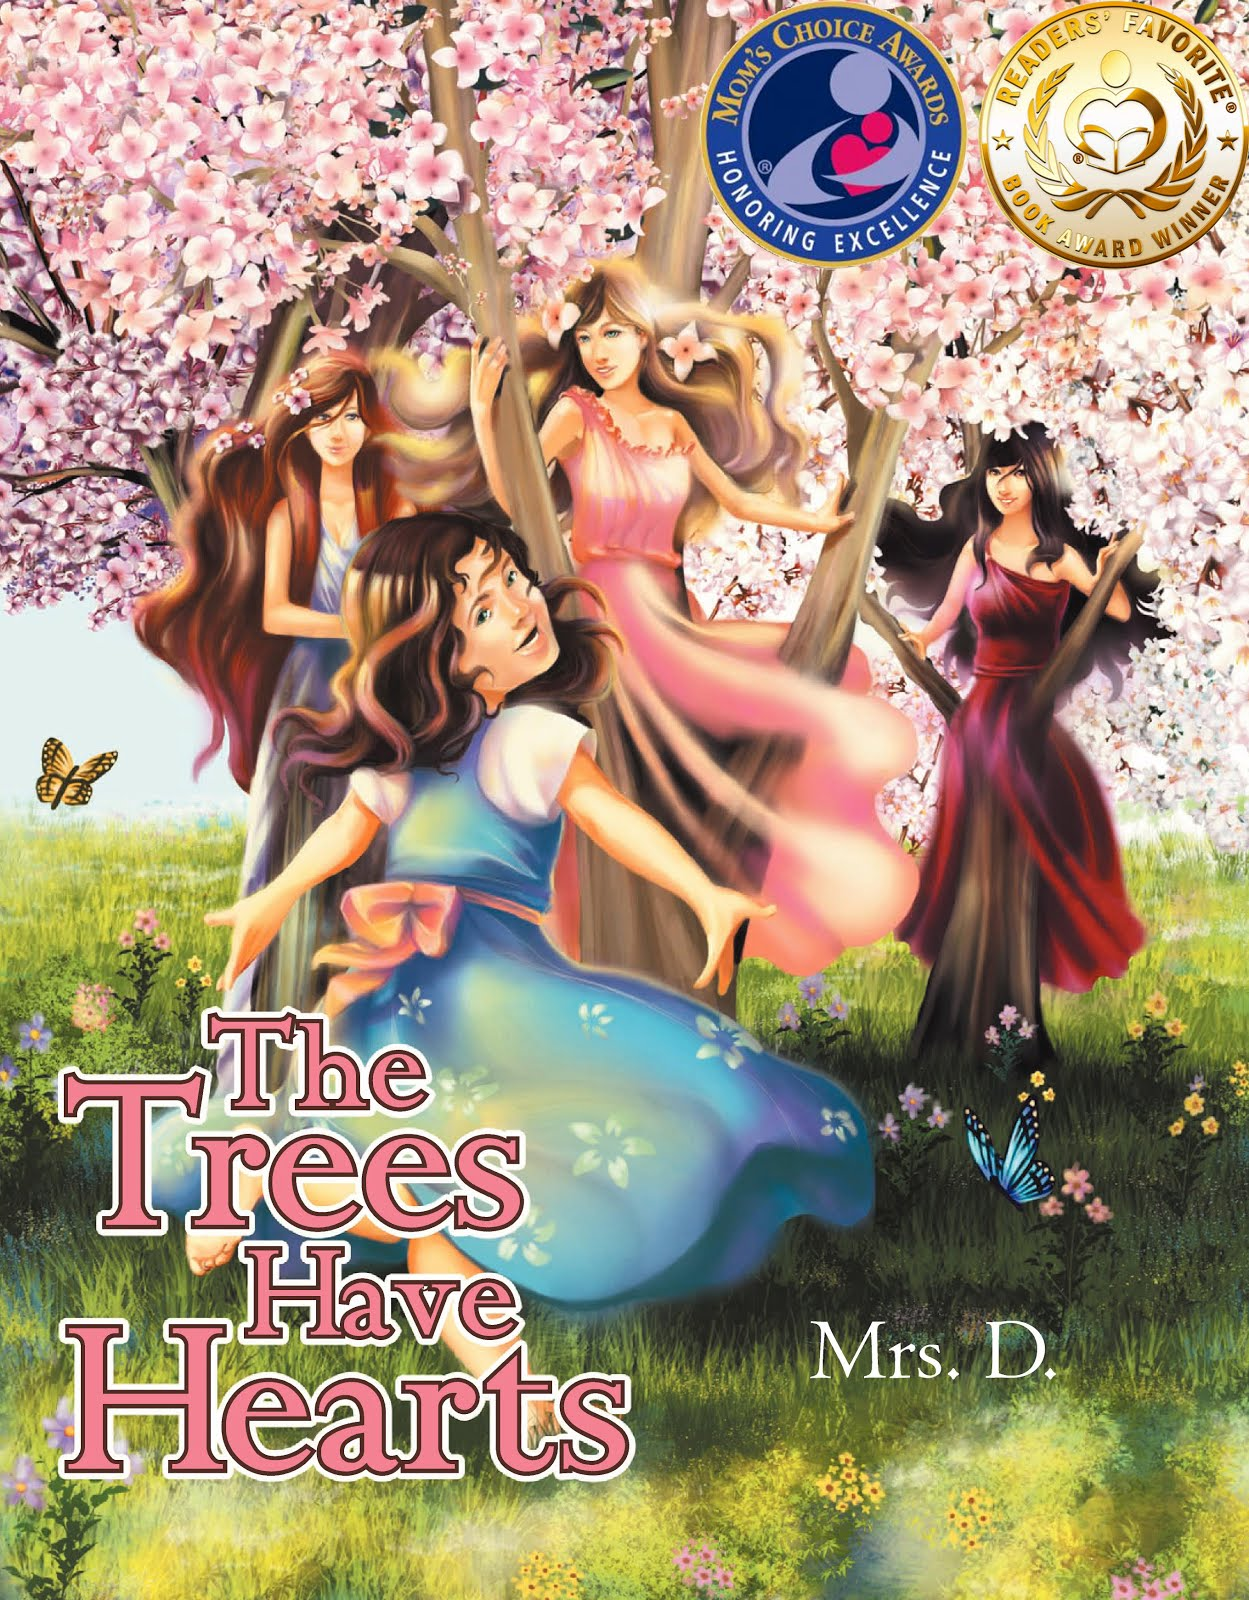 THE TREES HAVE HEARTS - MULTI AWARD WINNING!